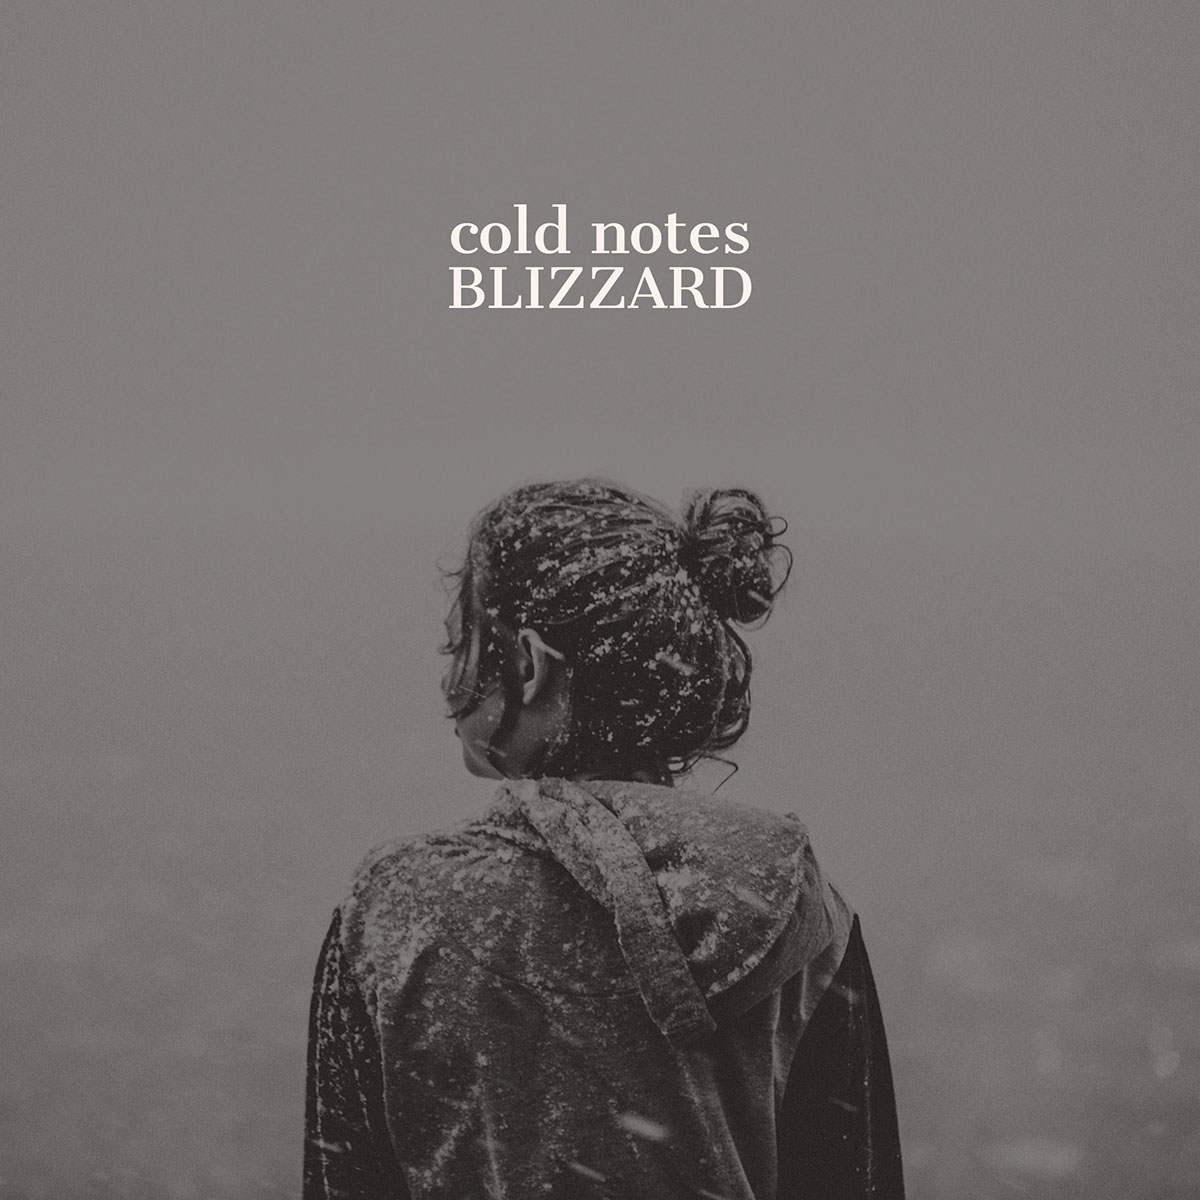 cold notes